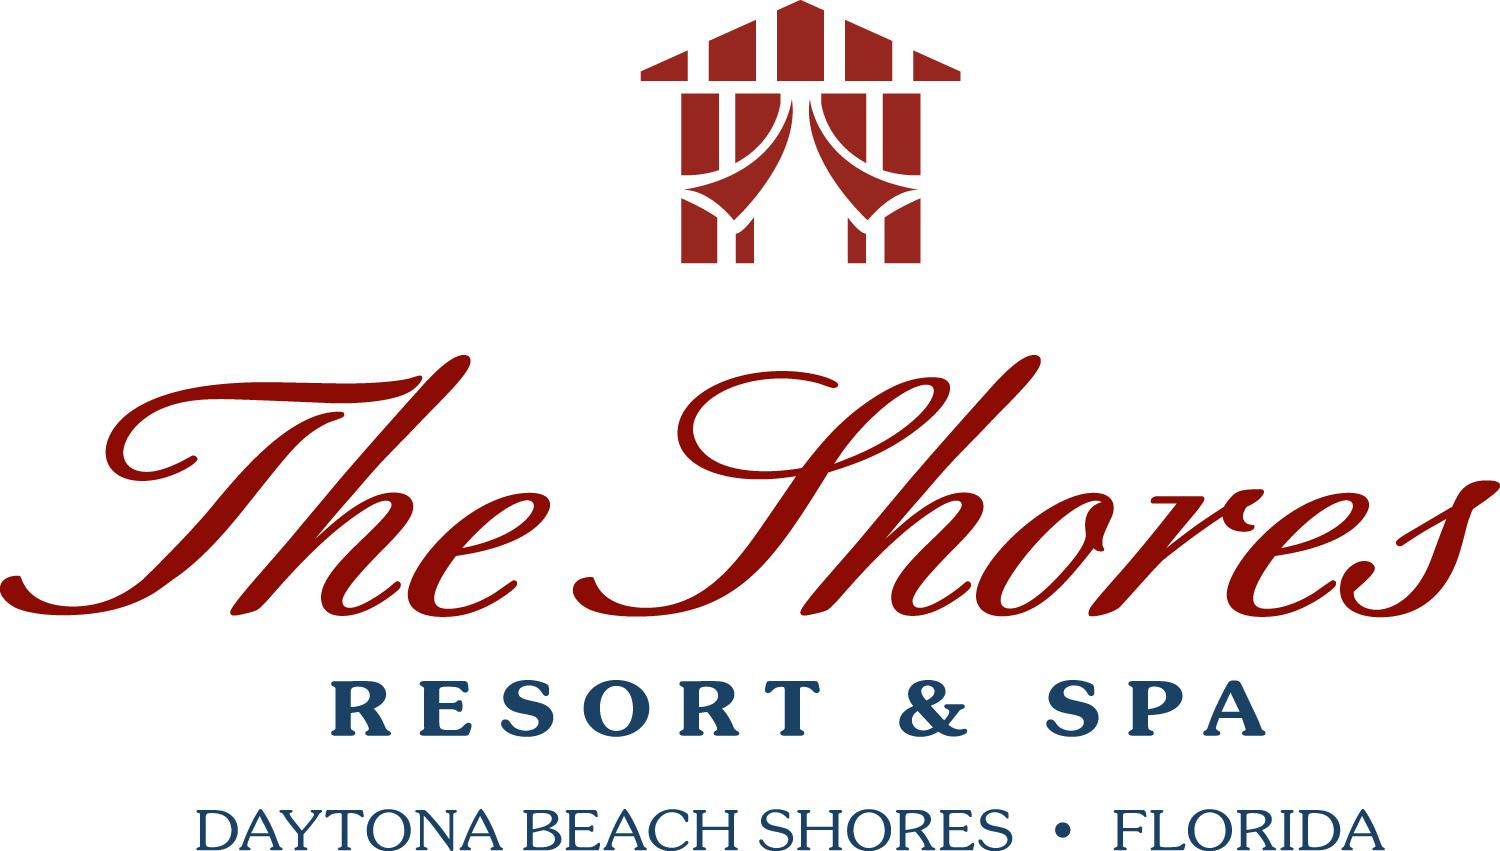 shores-logo-daytona-beach-fla-vertical.jpg